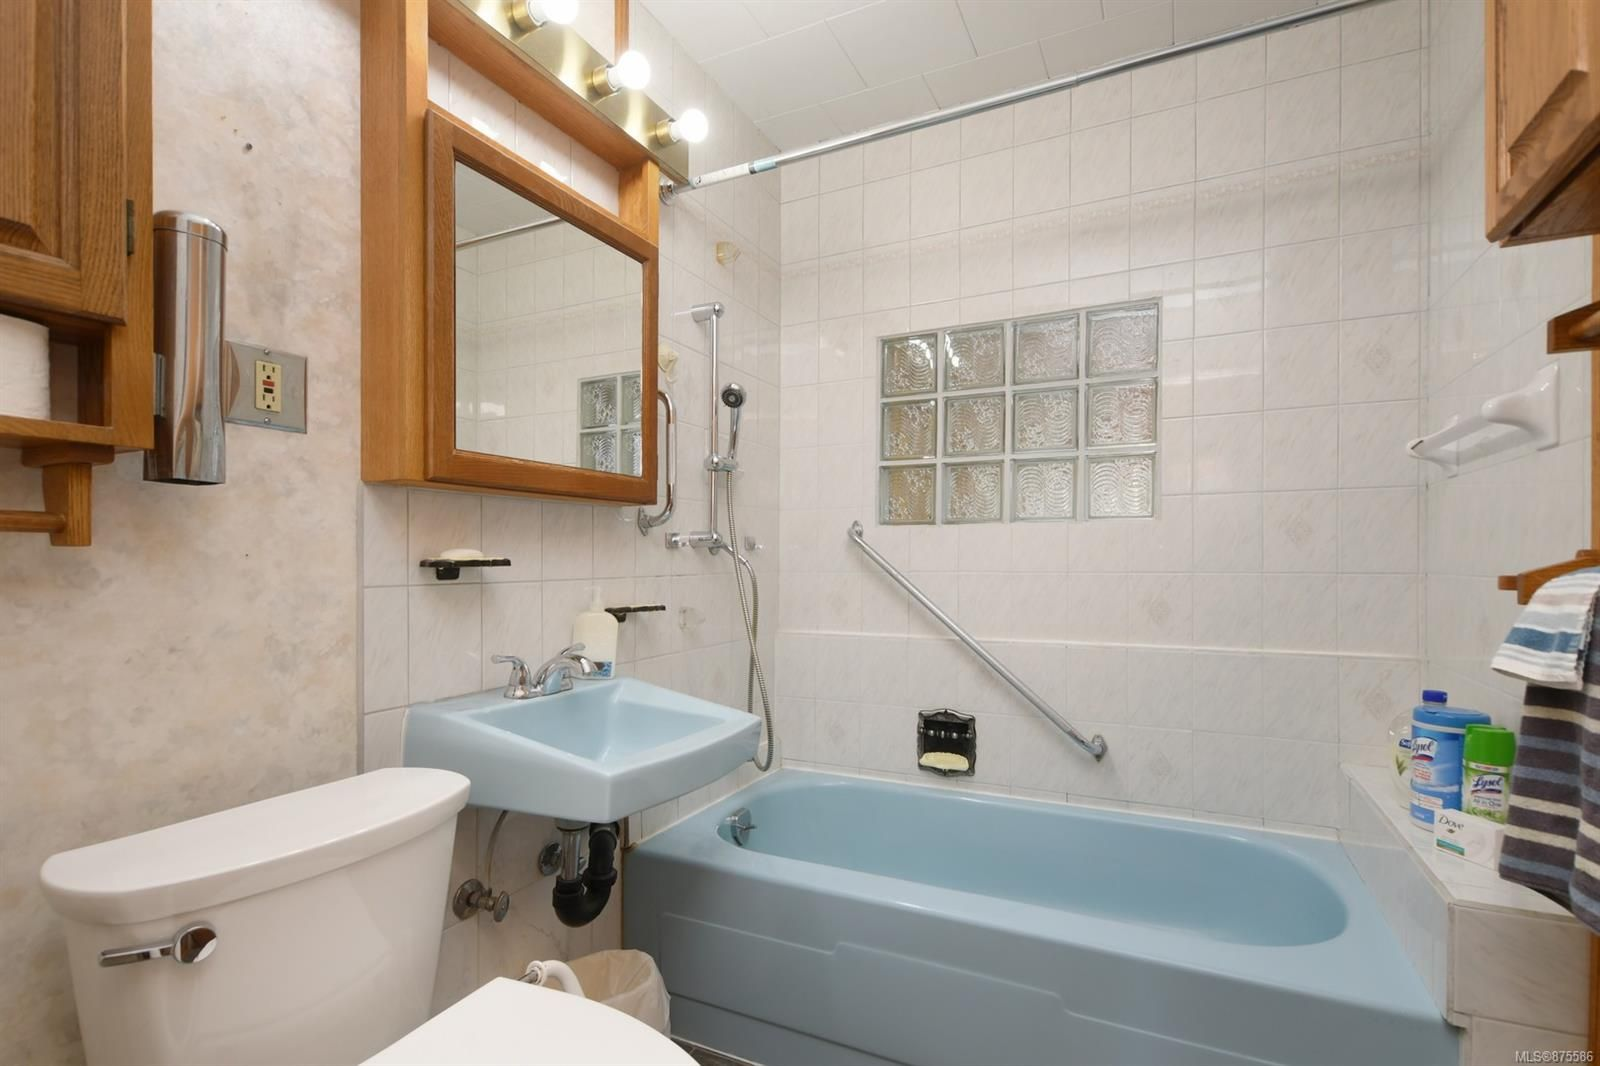 Photo 10: Photos: 55 Ontario St in : Vi James Bay House for sale (Victoria)  : MLS®# 875586